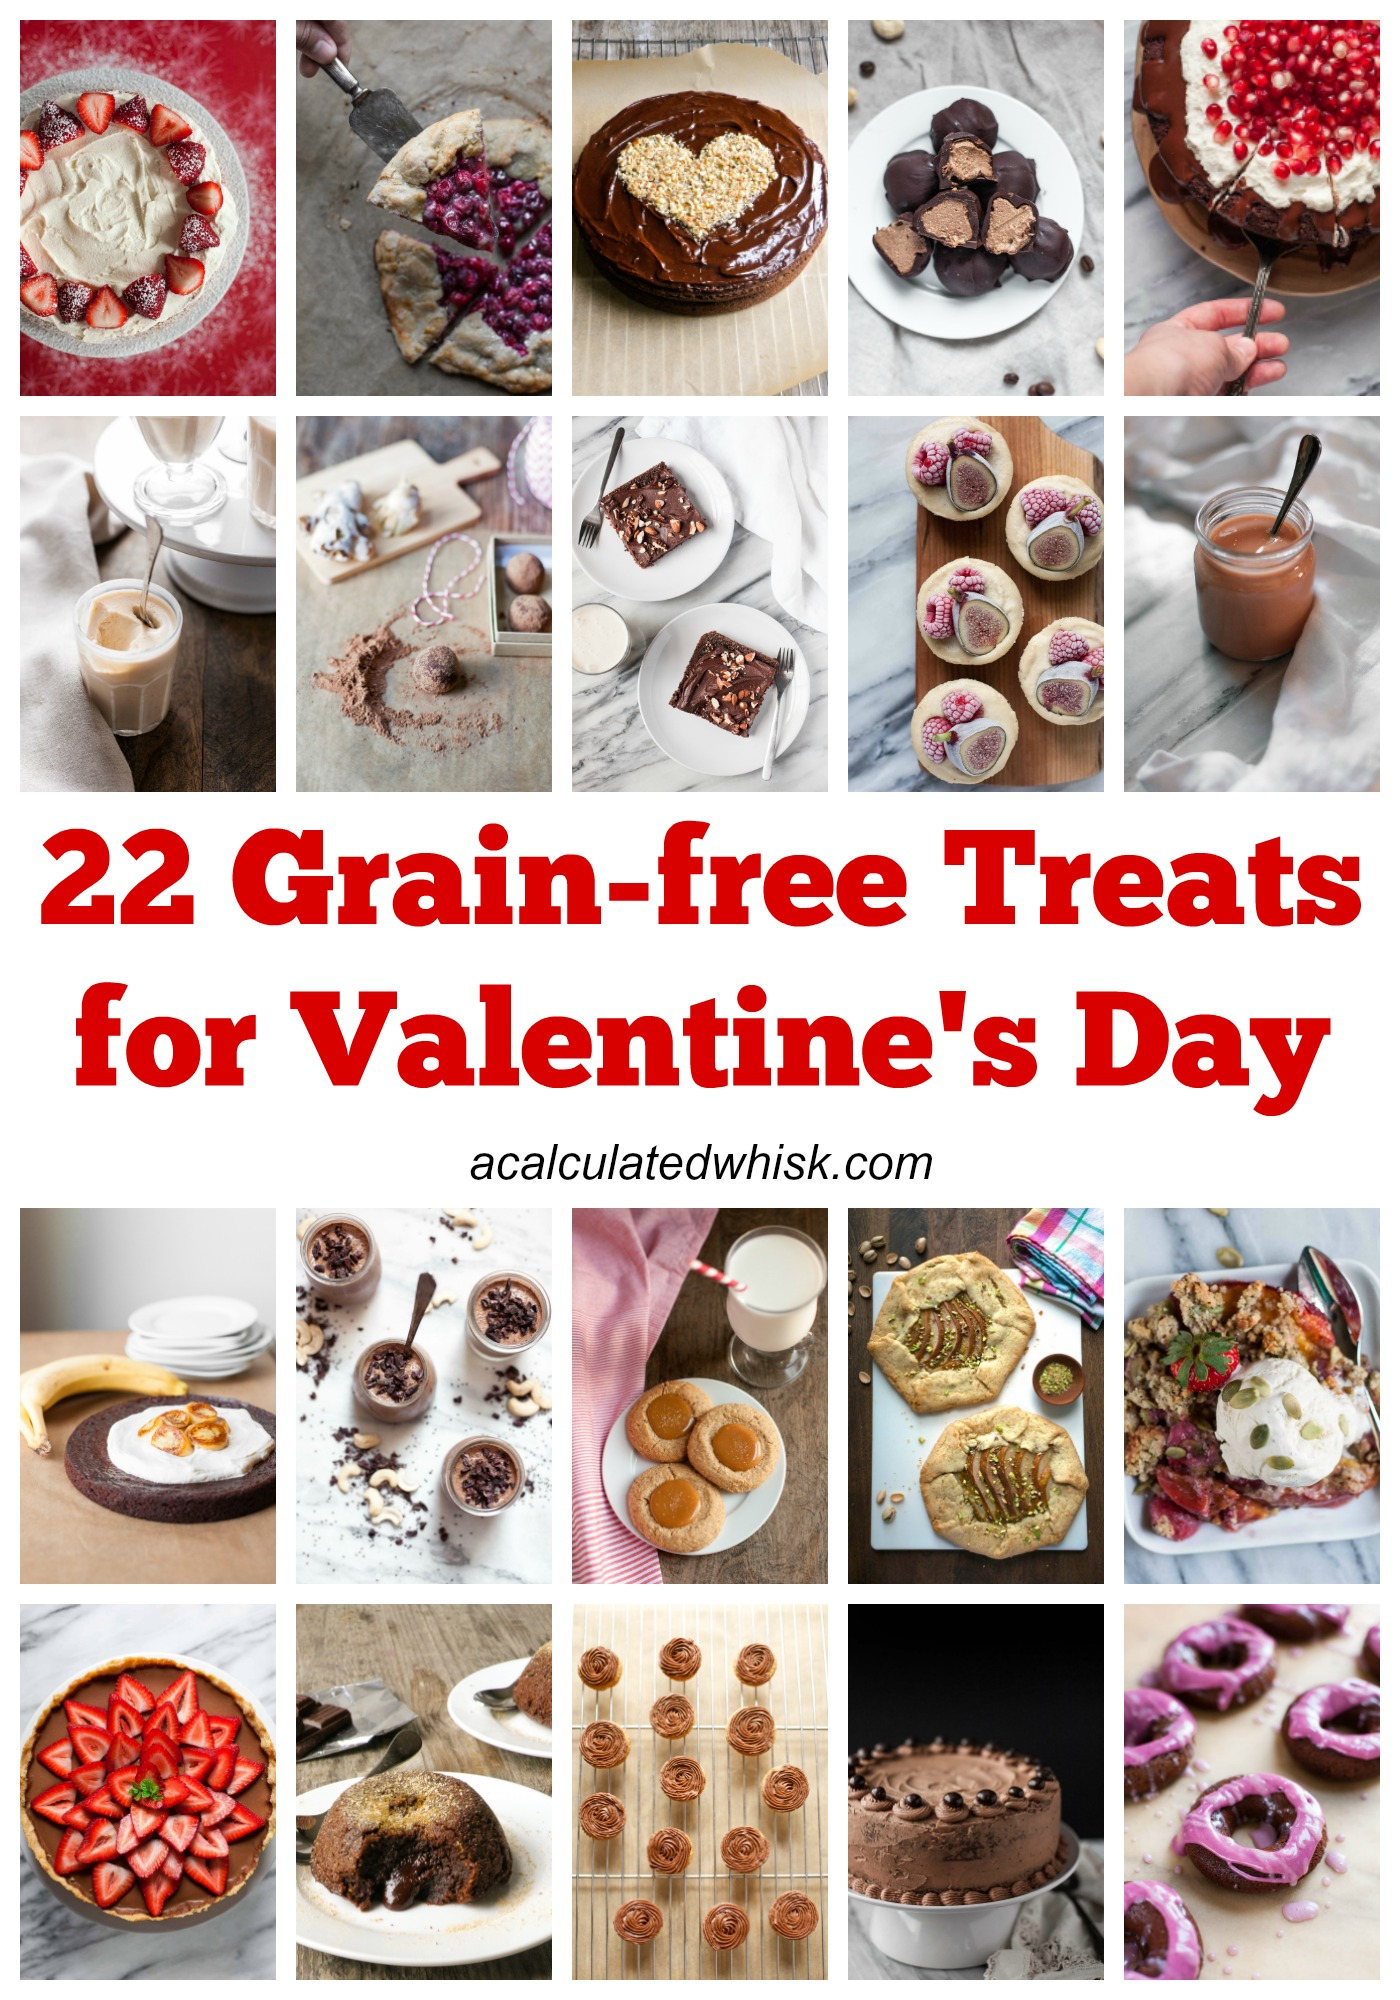 22 Grain-free Treats for Valentine's Day